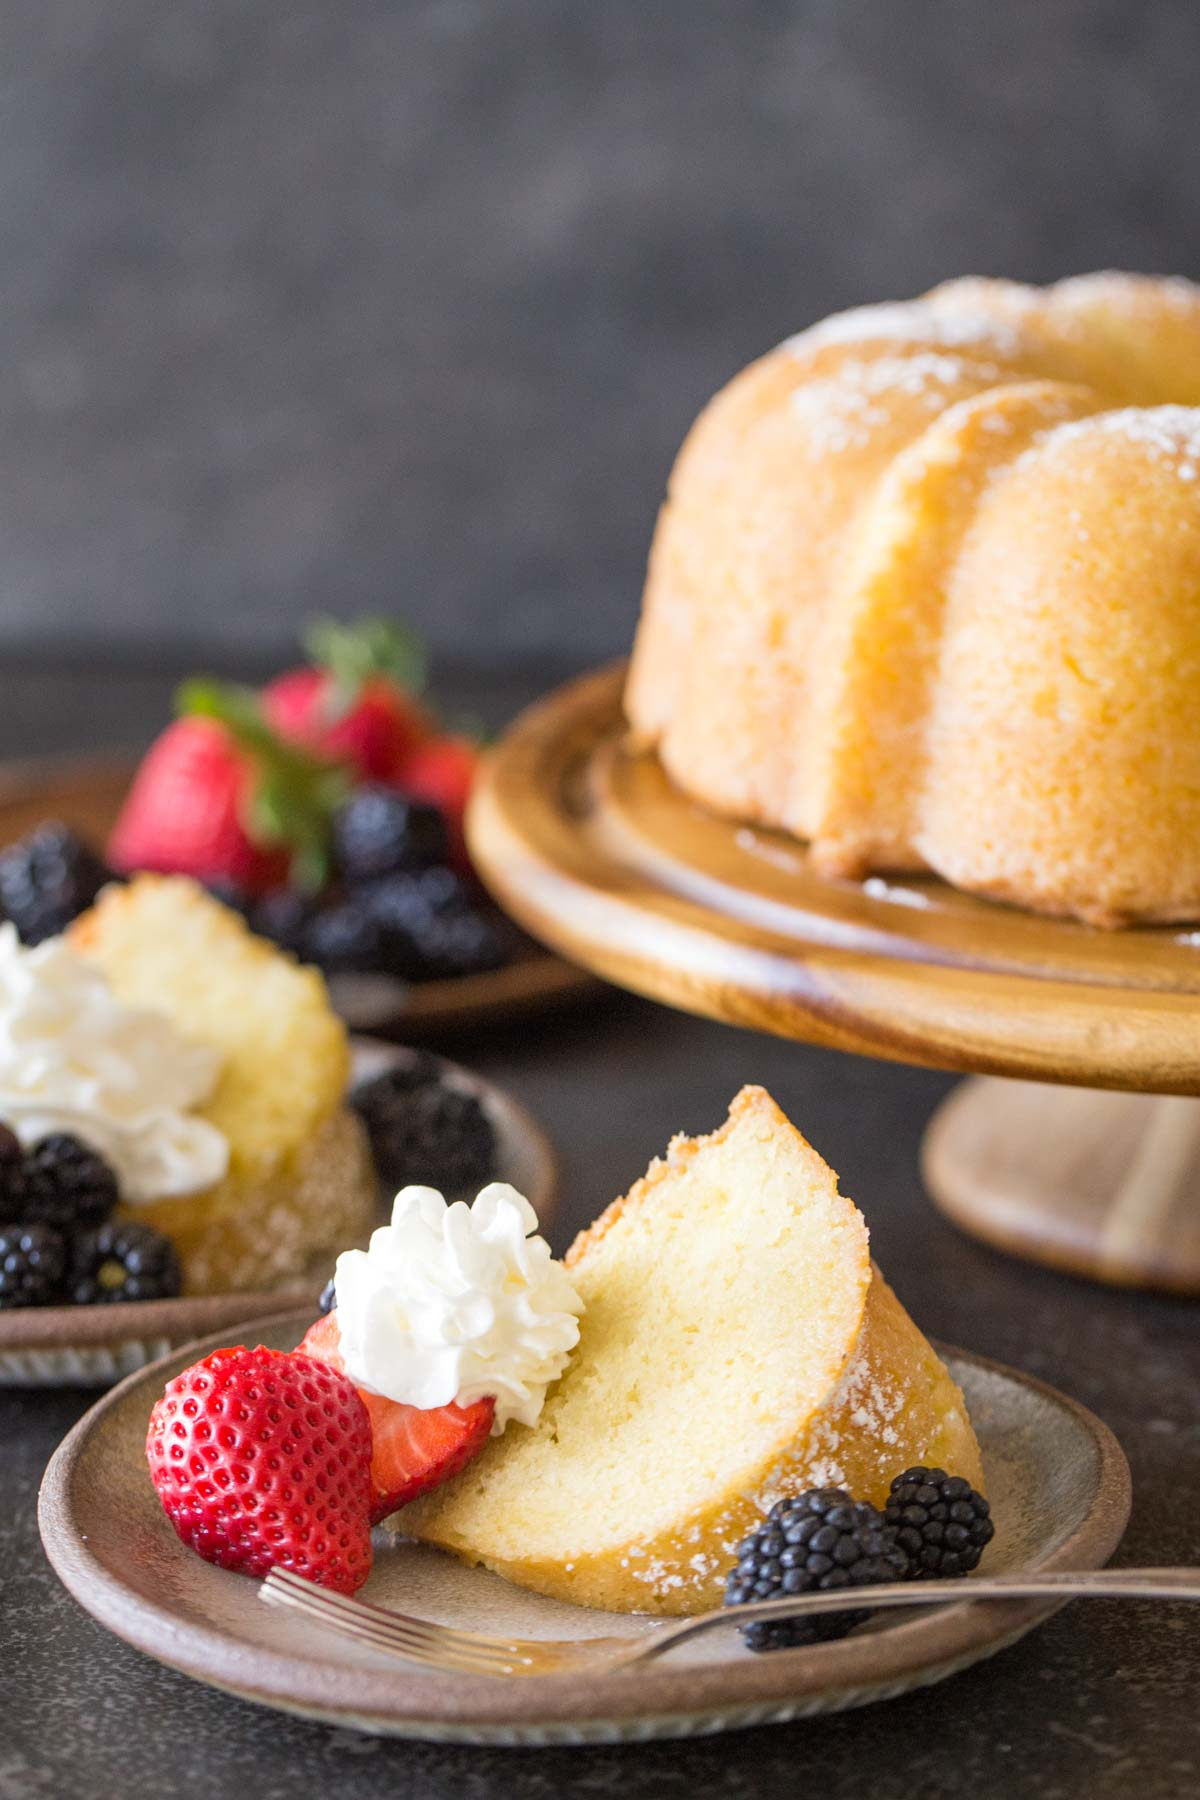 Kentucky Butter Cake on wooden cake stand with whipped cream and berries on a grey background.